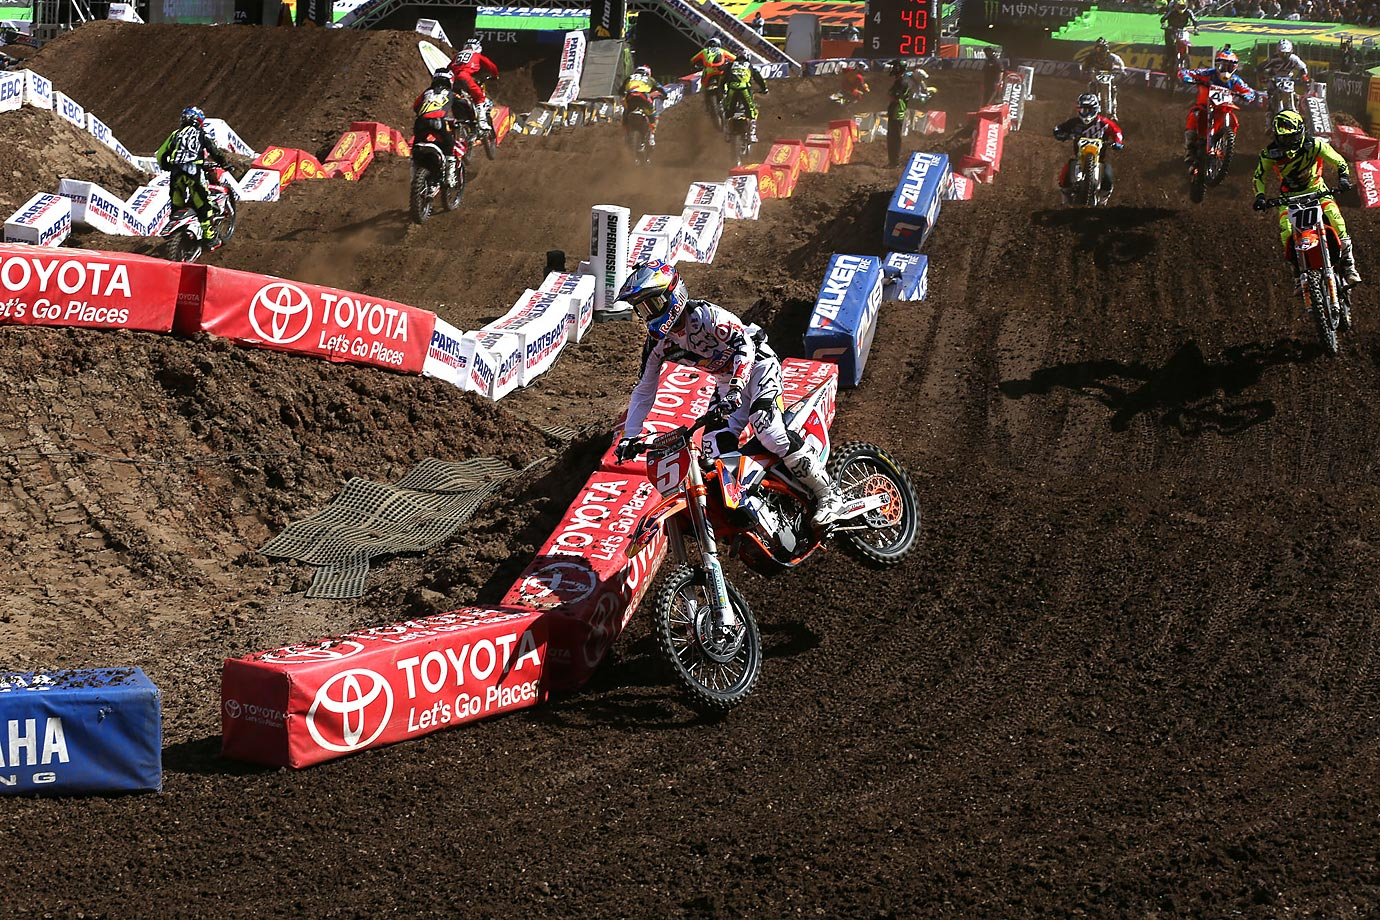 Dungey turns around a bend at Metlife Stadium.